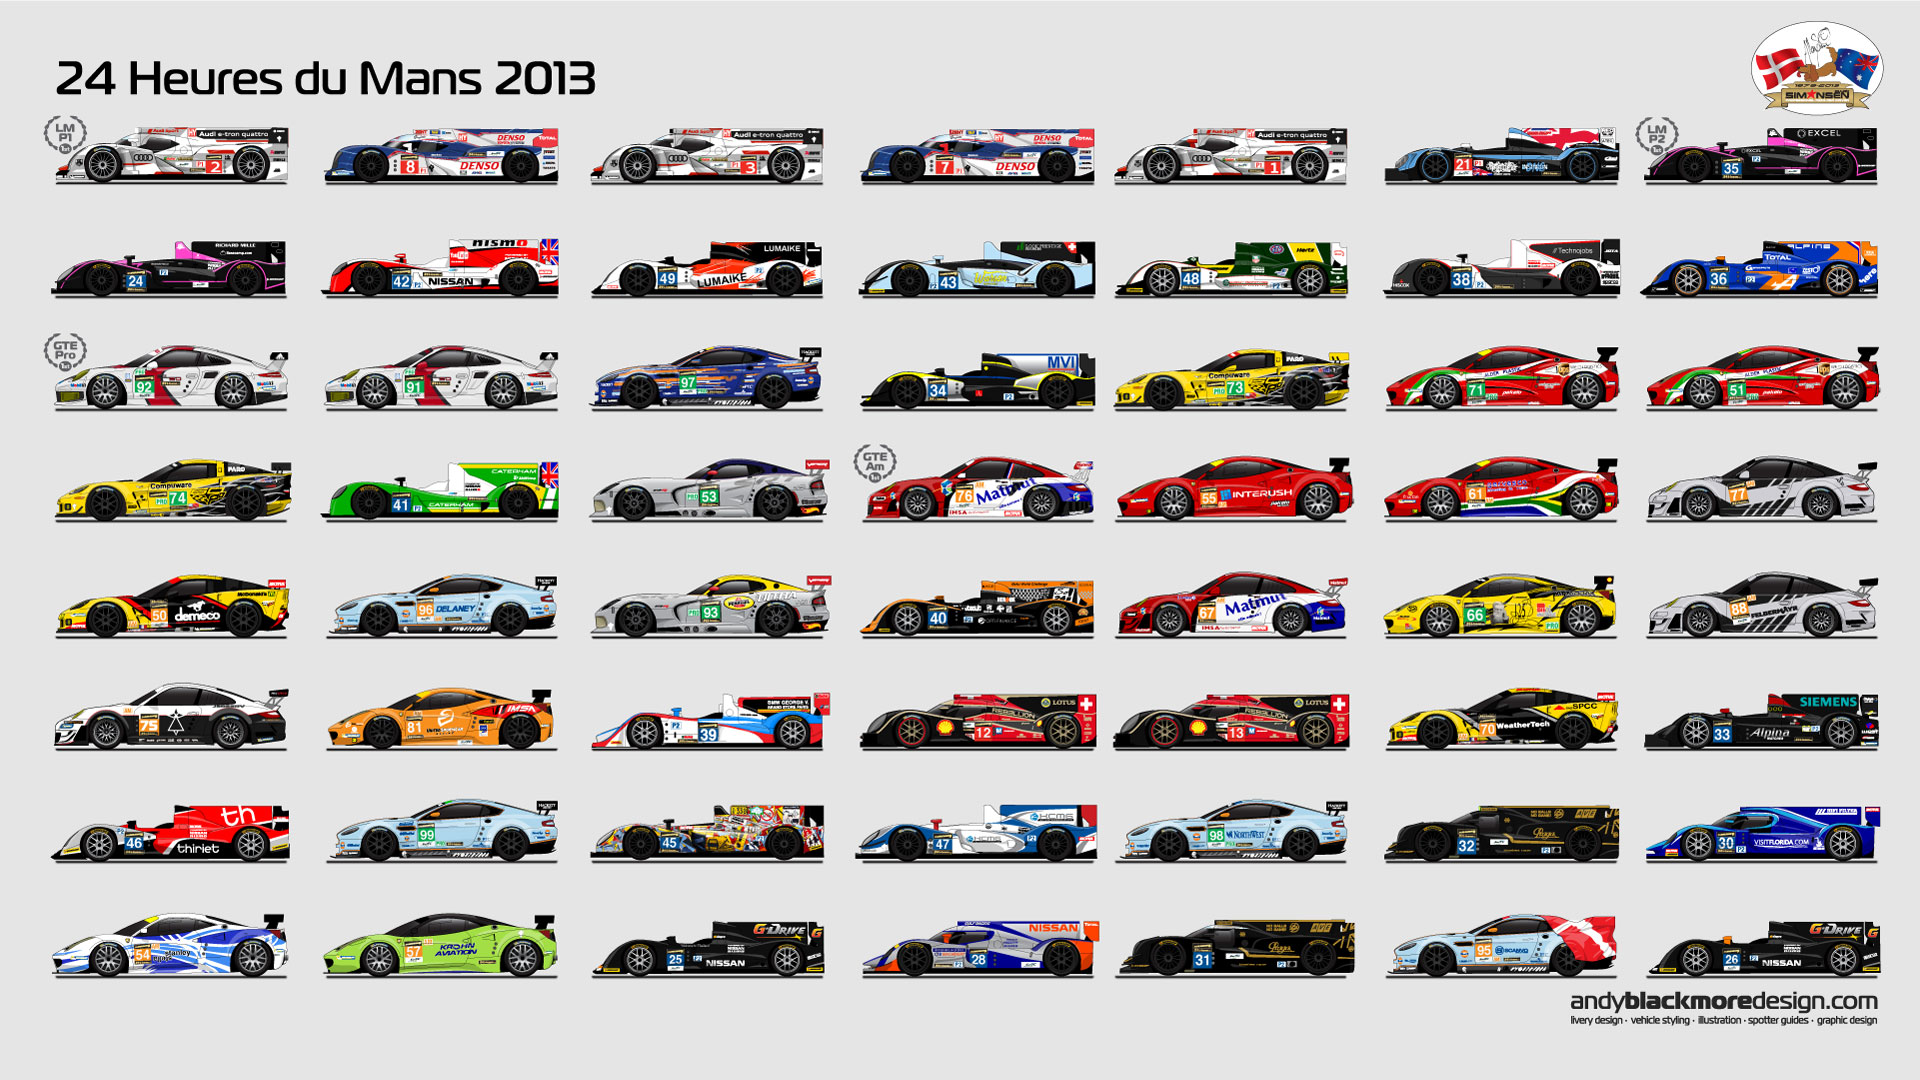 2013 le mans and wec spotter guide. Black Bedroom Furniture Sets. Home Design Ideas